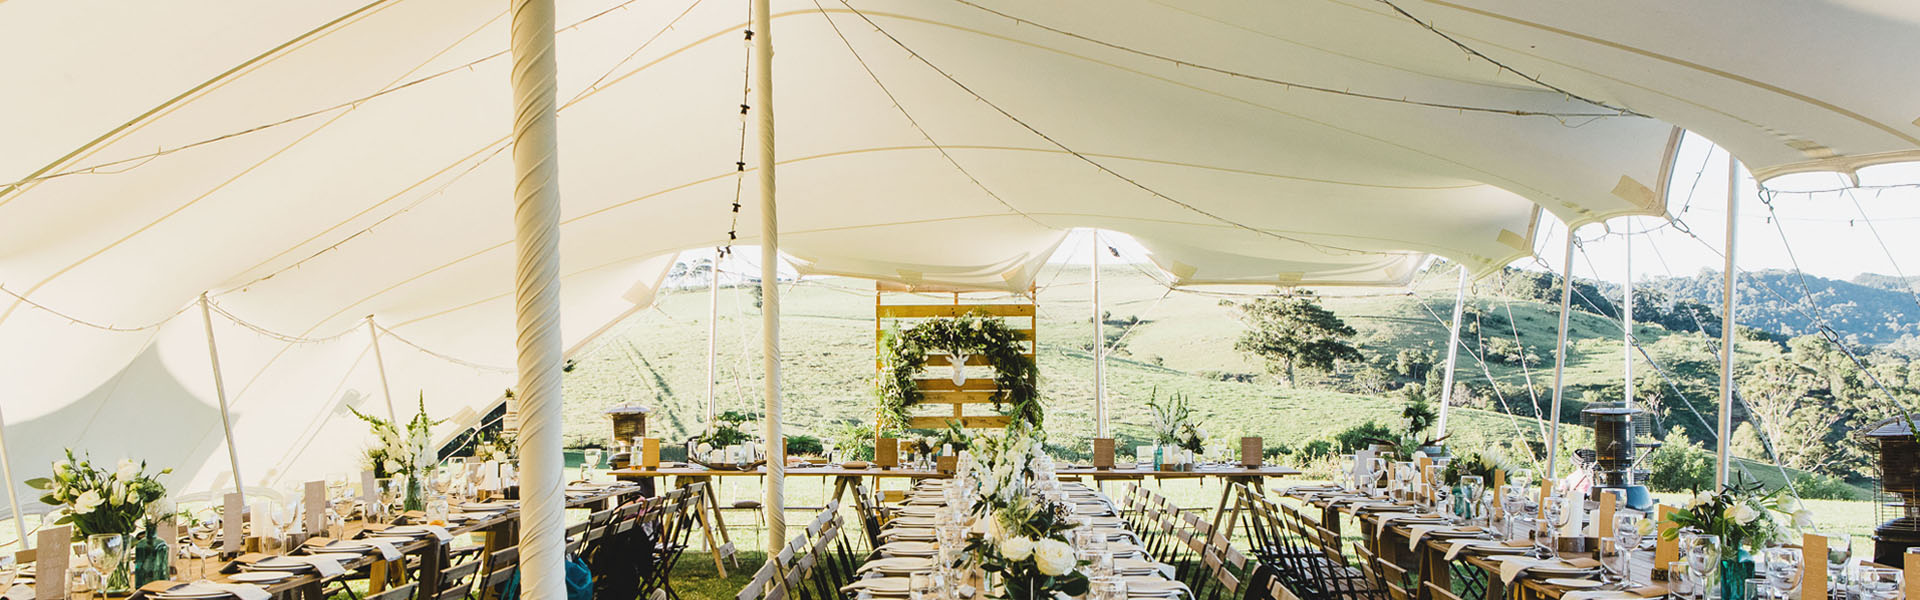 Weddin Marquee Hire